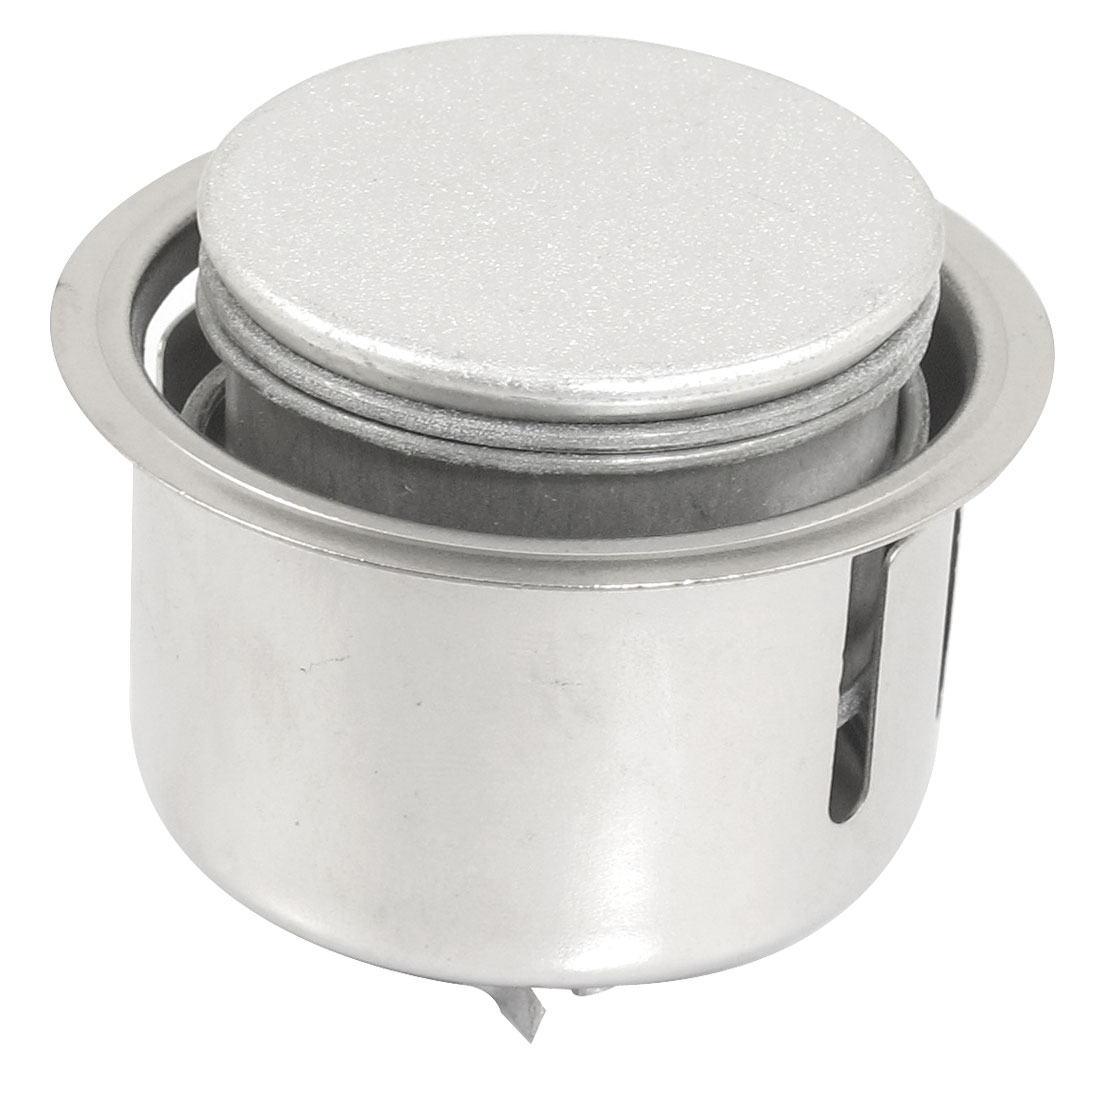 Silver Tone Metal Antiflow Steam Release Cooker Valve Vent Replacement